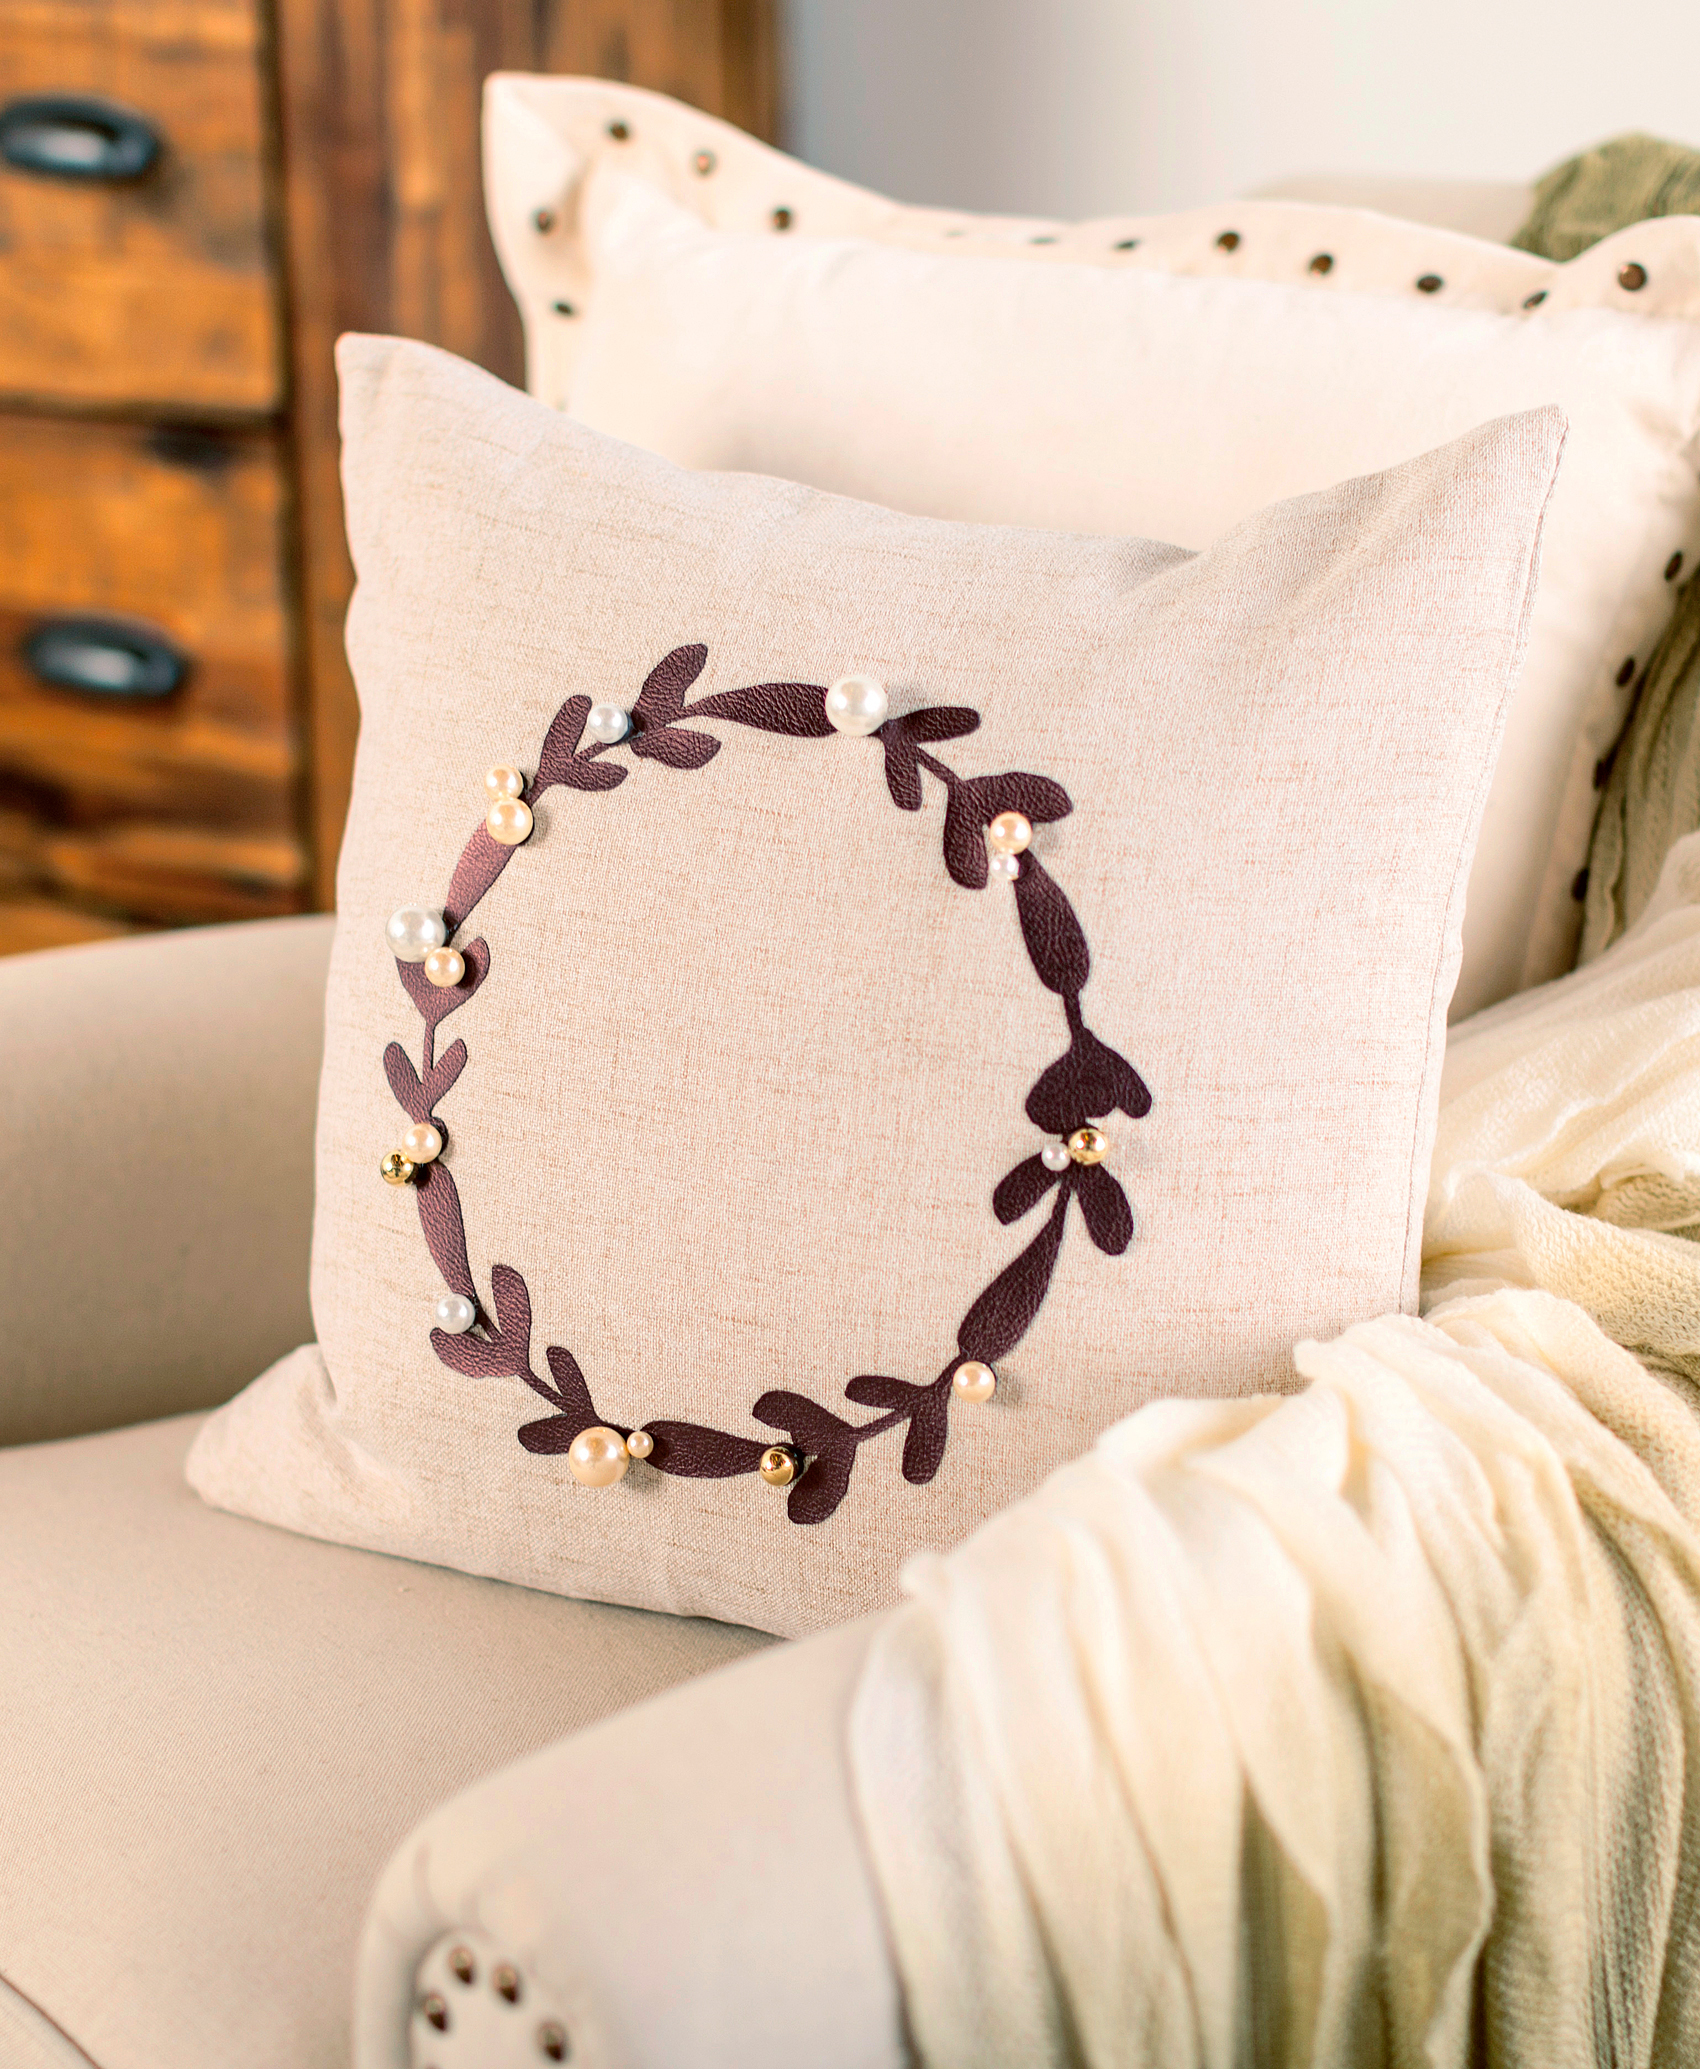 Using Cricut Faux Leather + Gold Foil to Dress-up Your Home